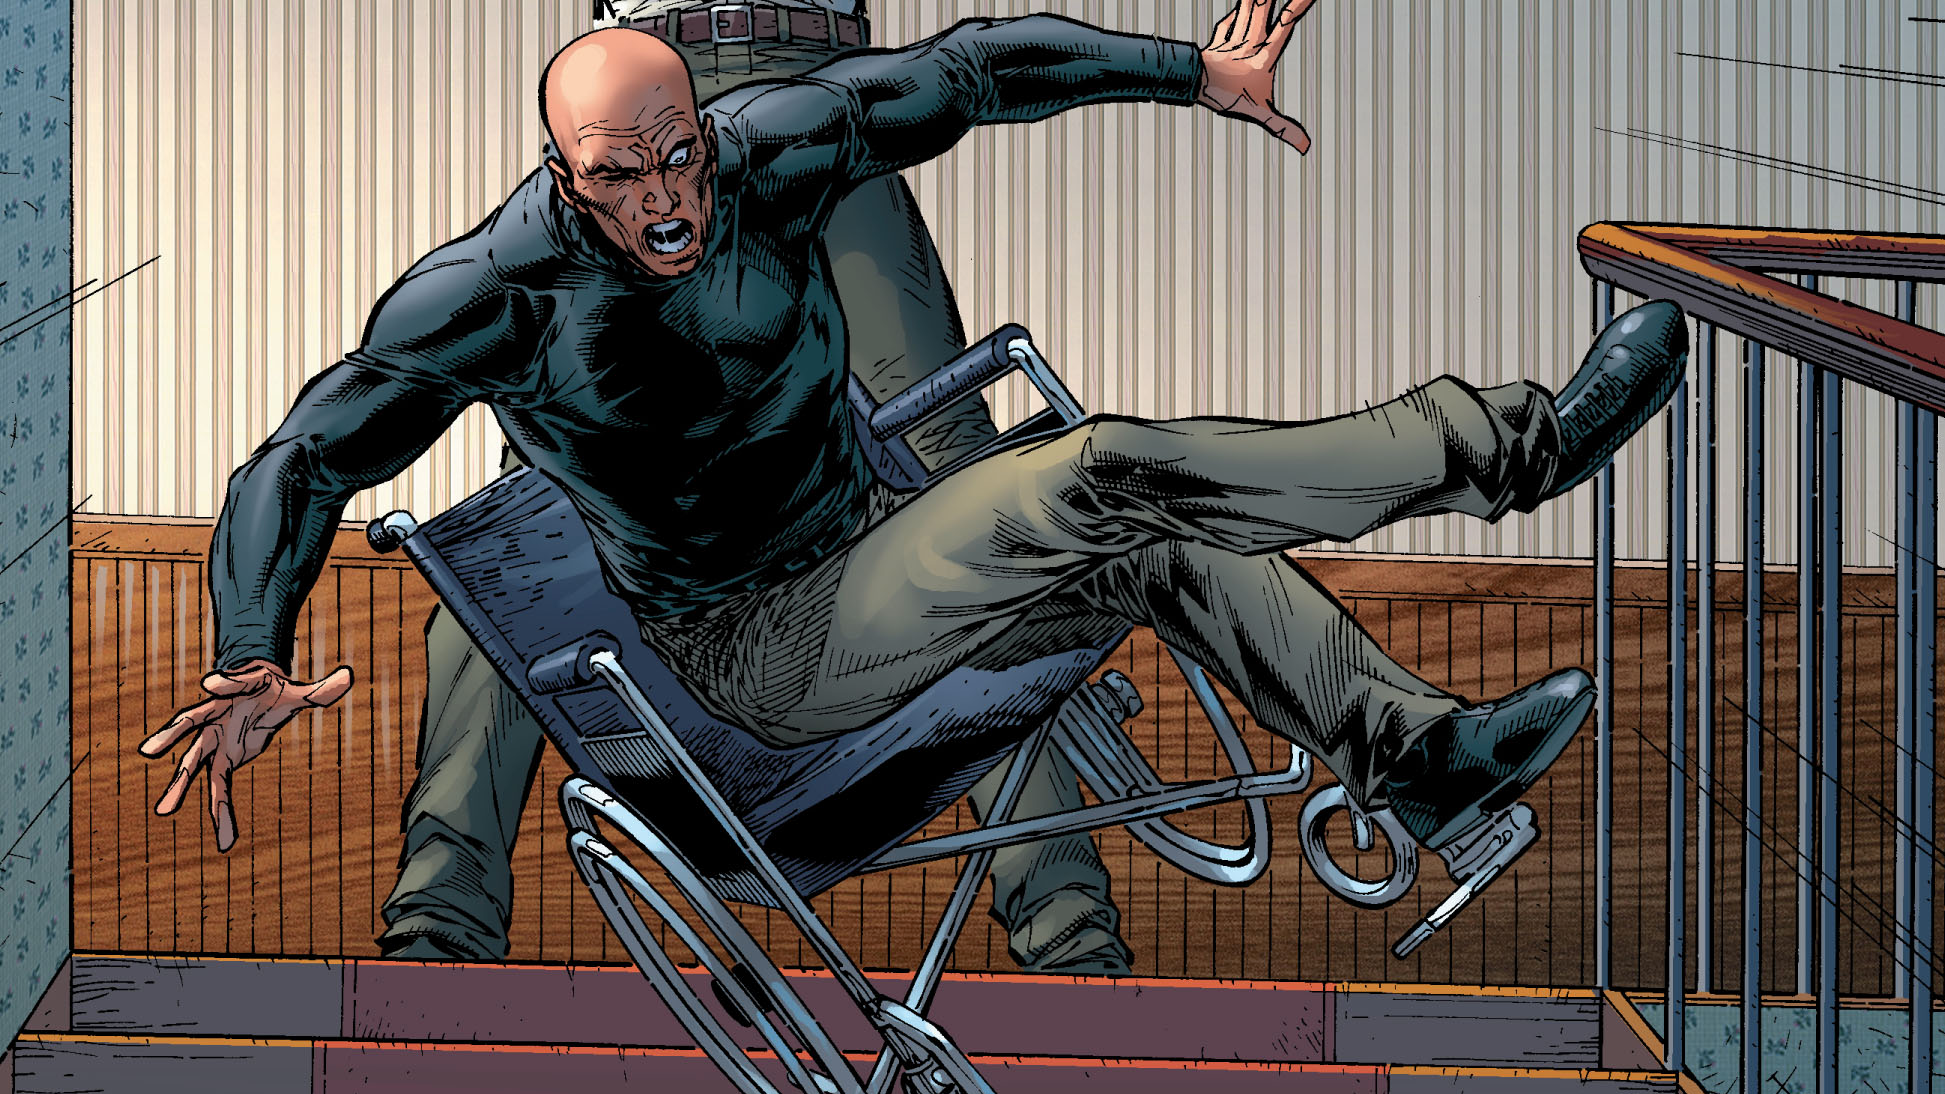 How Does X-Men's Charles Xavier Leave His Own House?